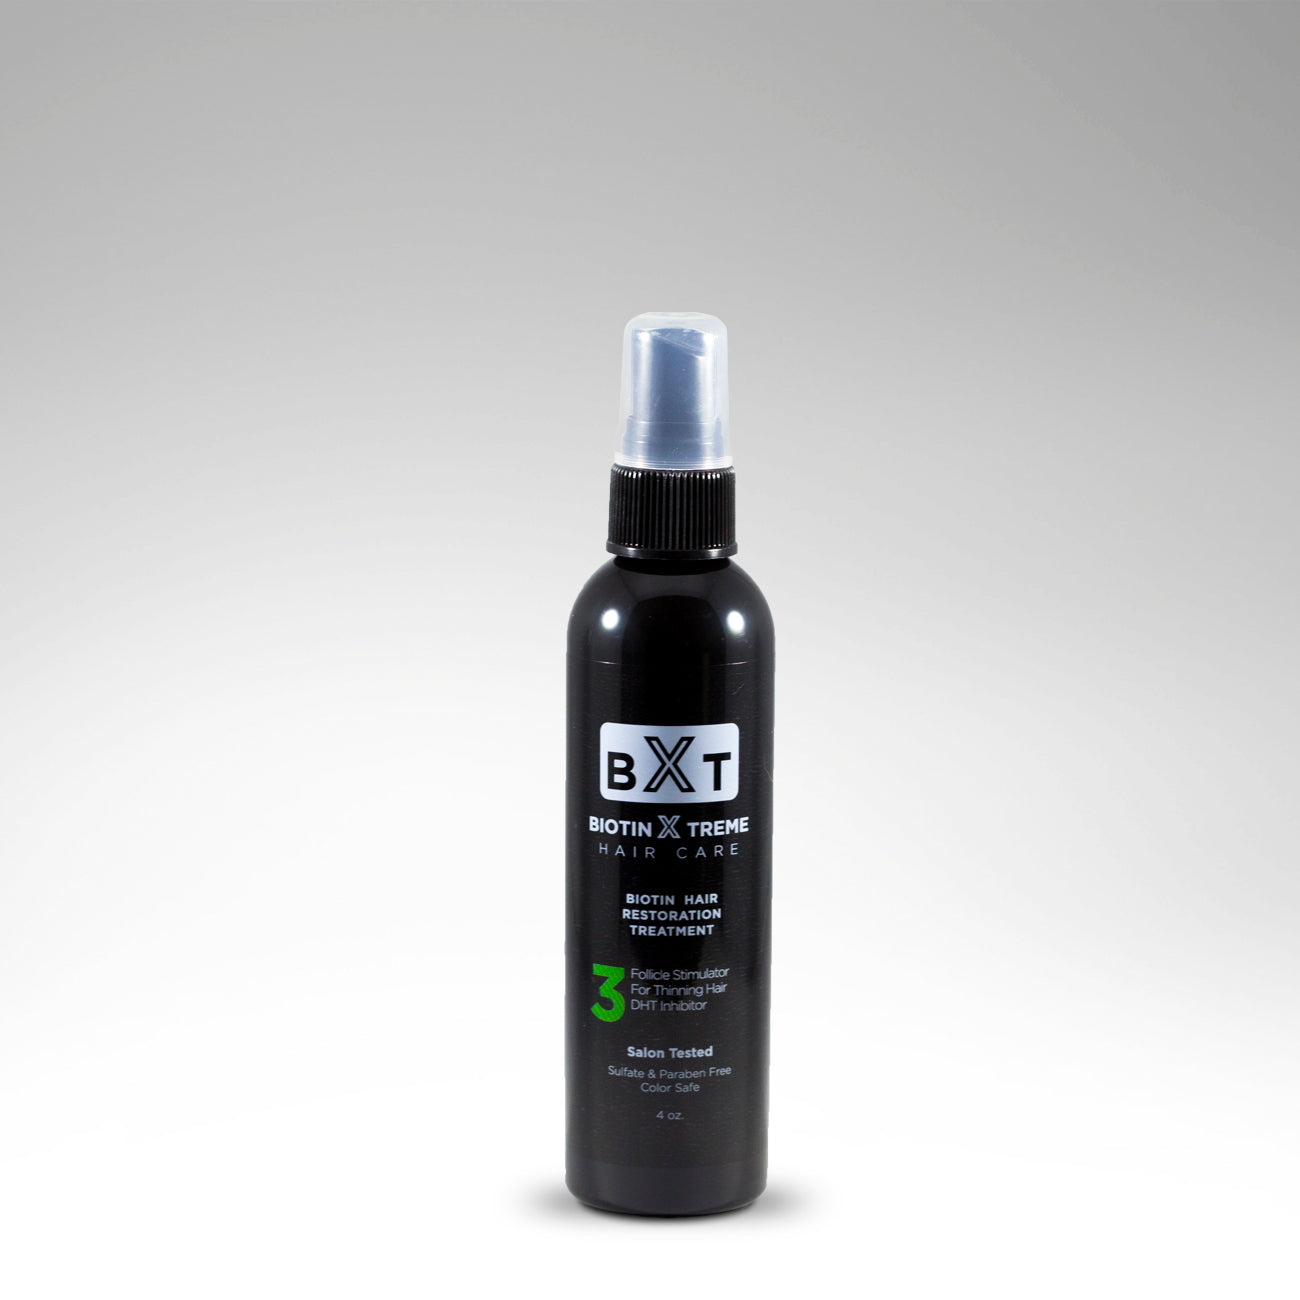 Biotin Hair Restoration Spray, Follicle Stimulator and DHT Blocker